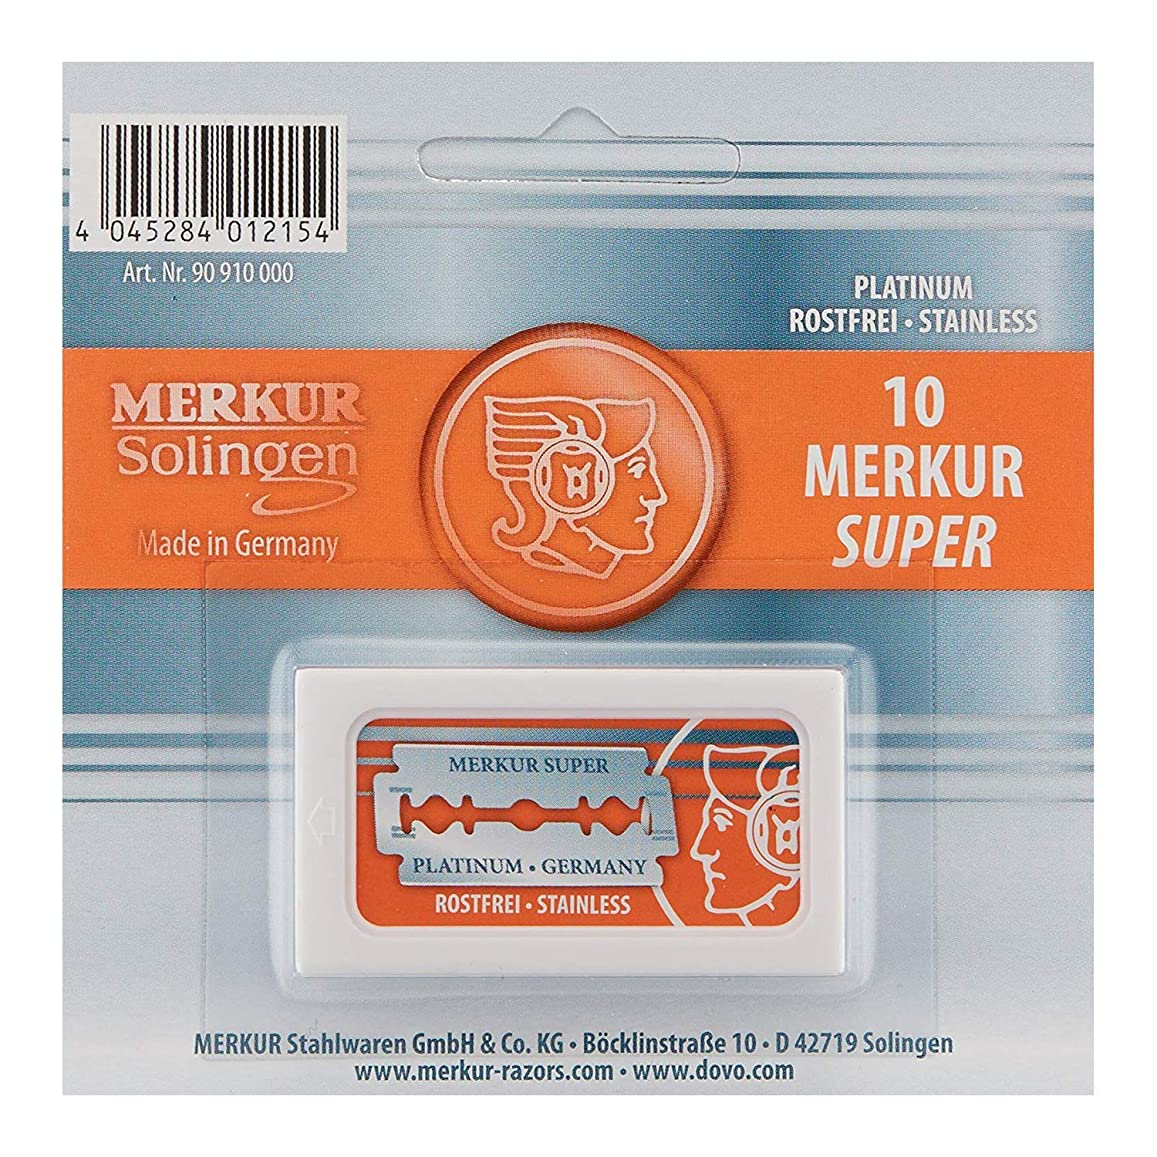 噂リング親Merkur Stainless Platinum Safety Razor Blades 10 Pack